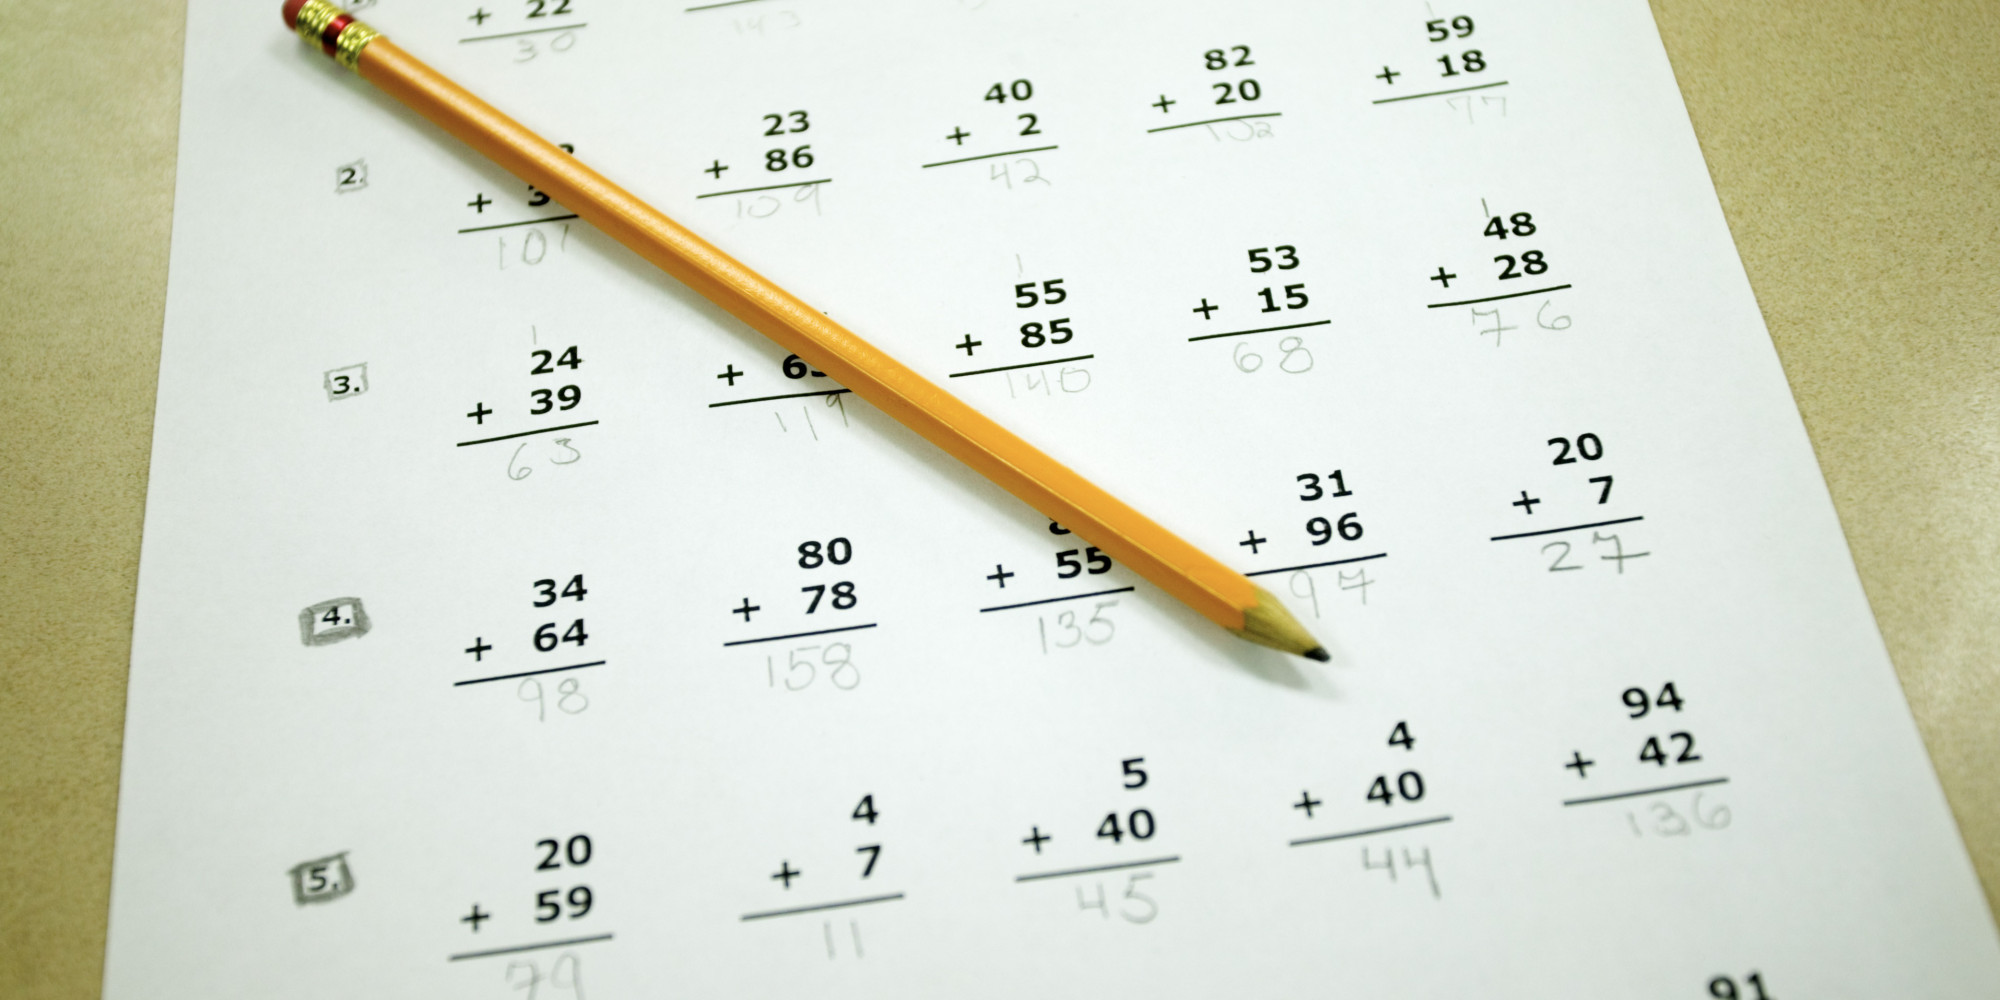 U S Test Scores Remain Stagnant While Other Countries See Rapid Rise